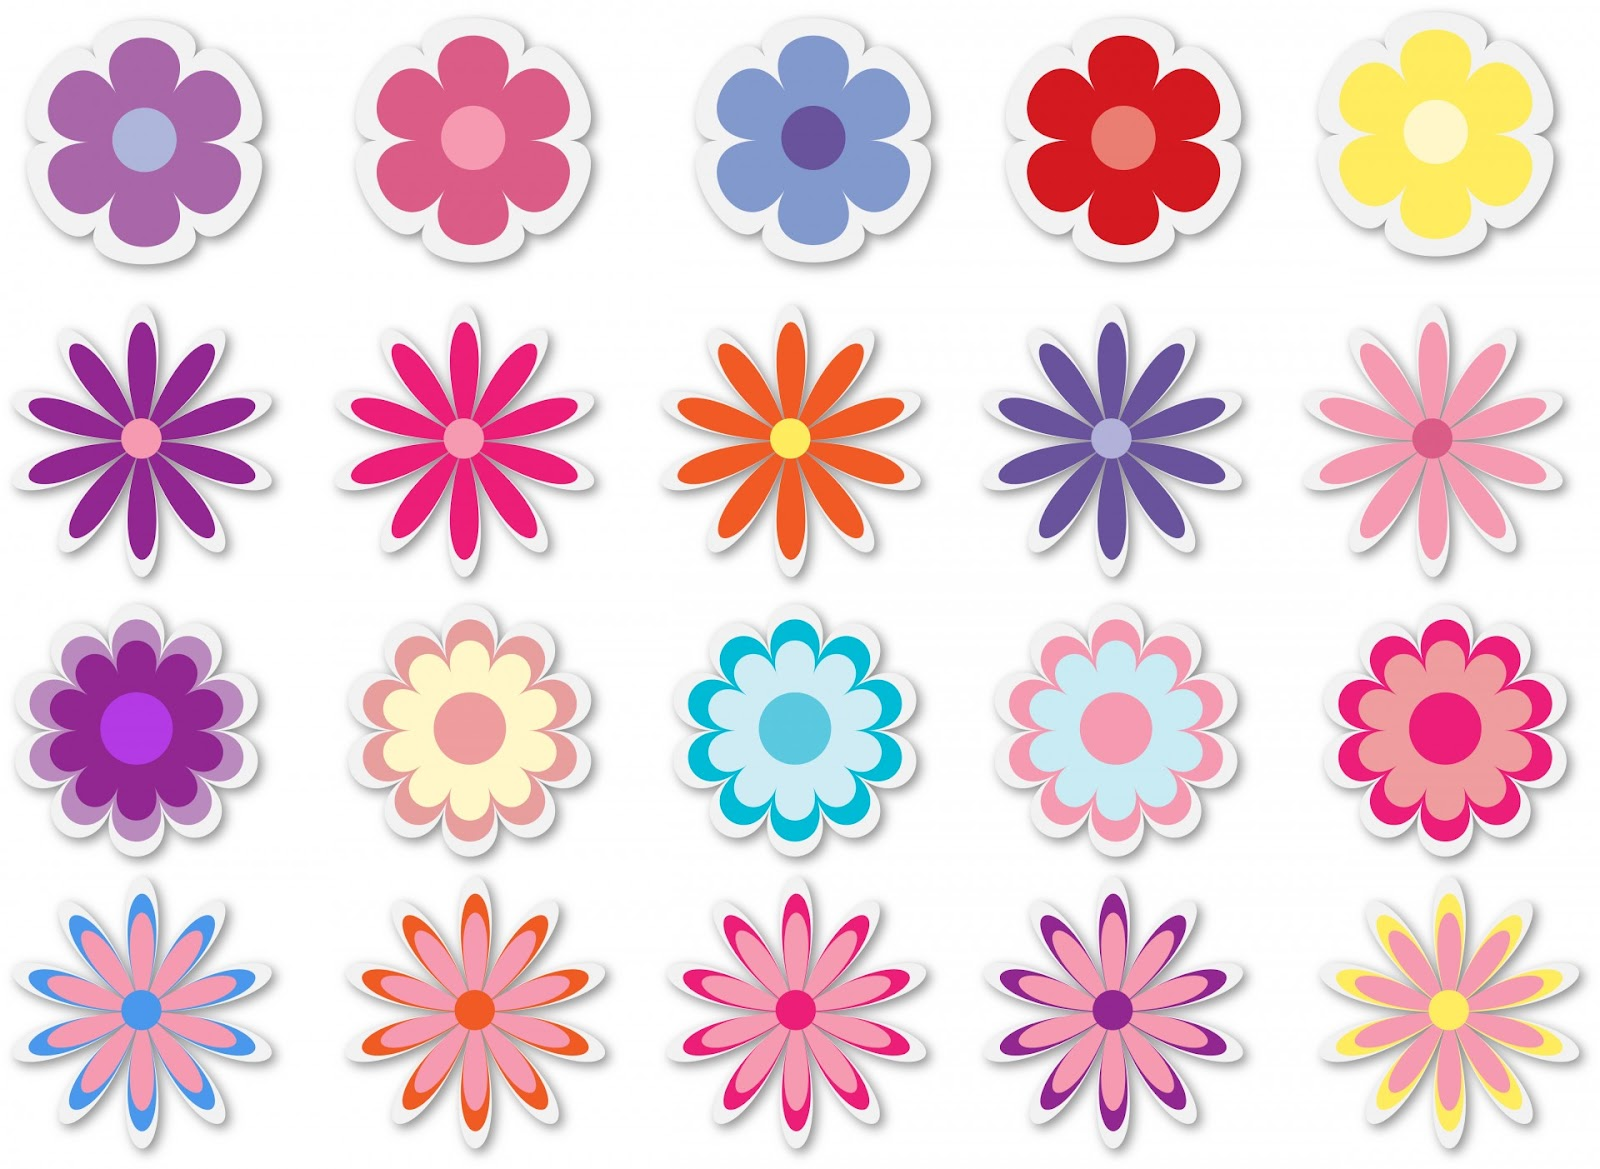 Reward Flower Stickers by public domain pictures.